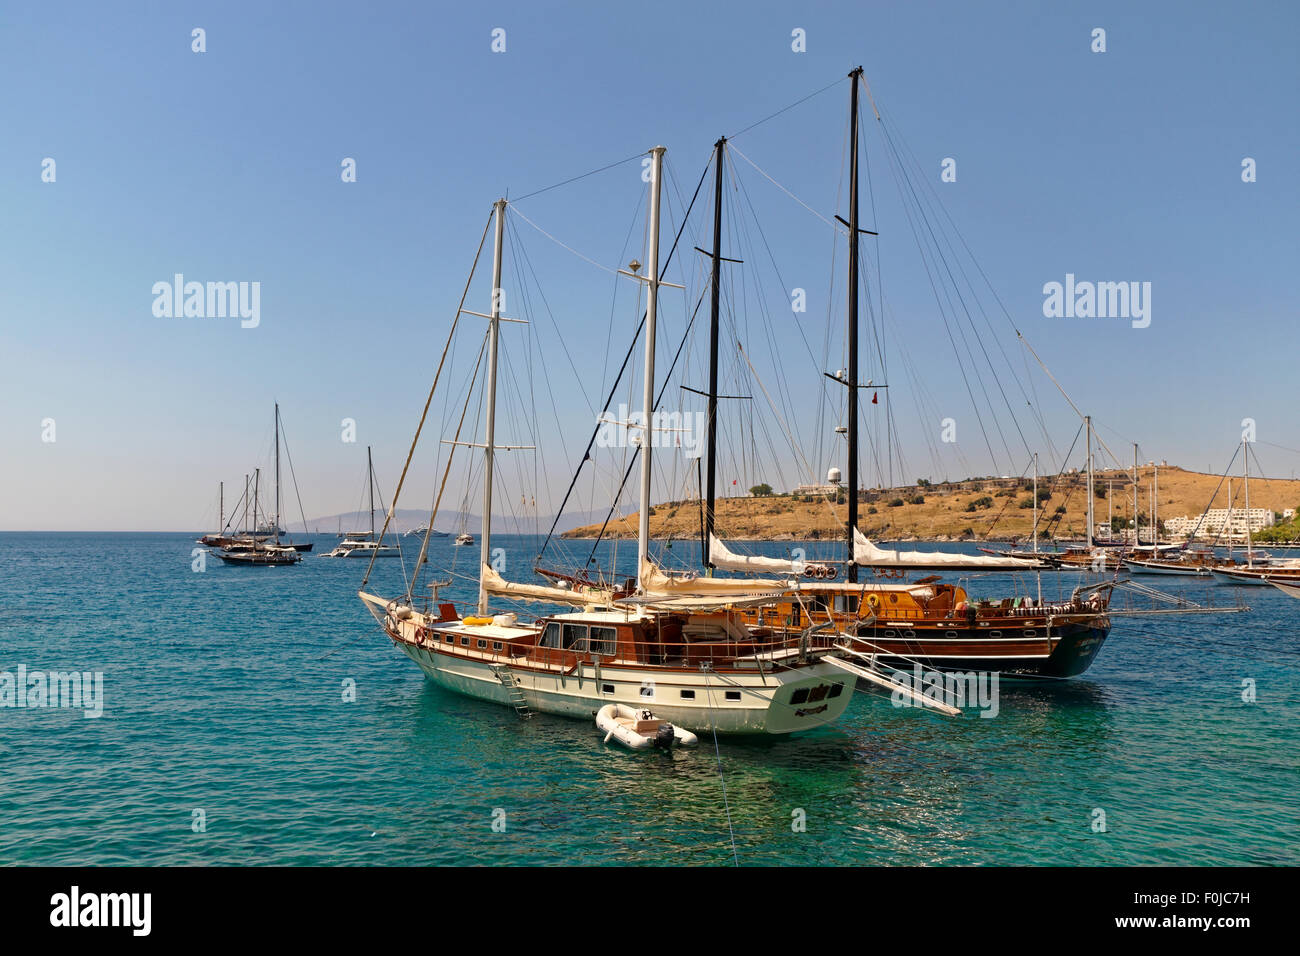 Gulets at anchor on the Aegean coast of Turkey. - Stock Image